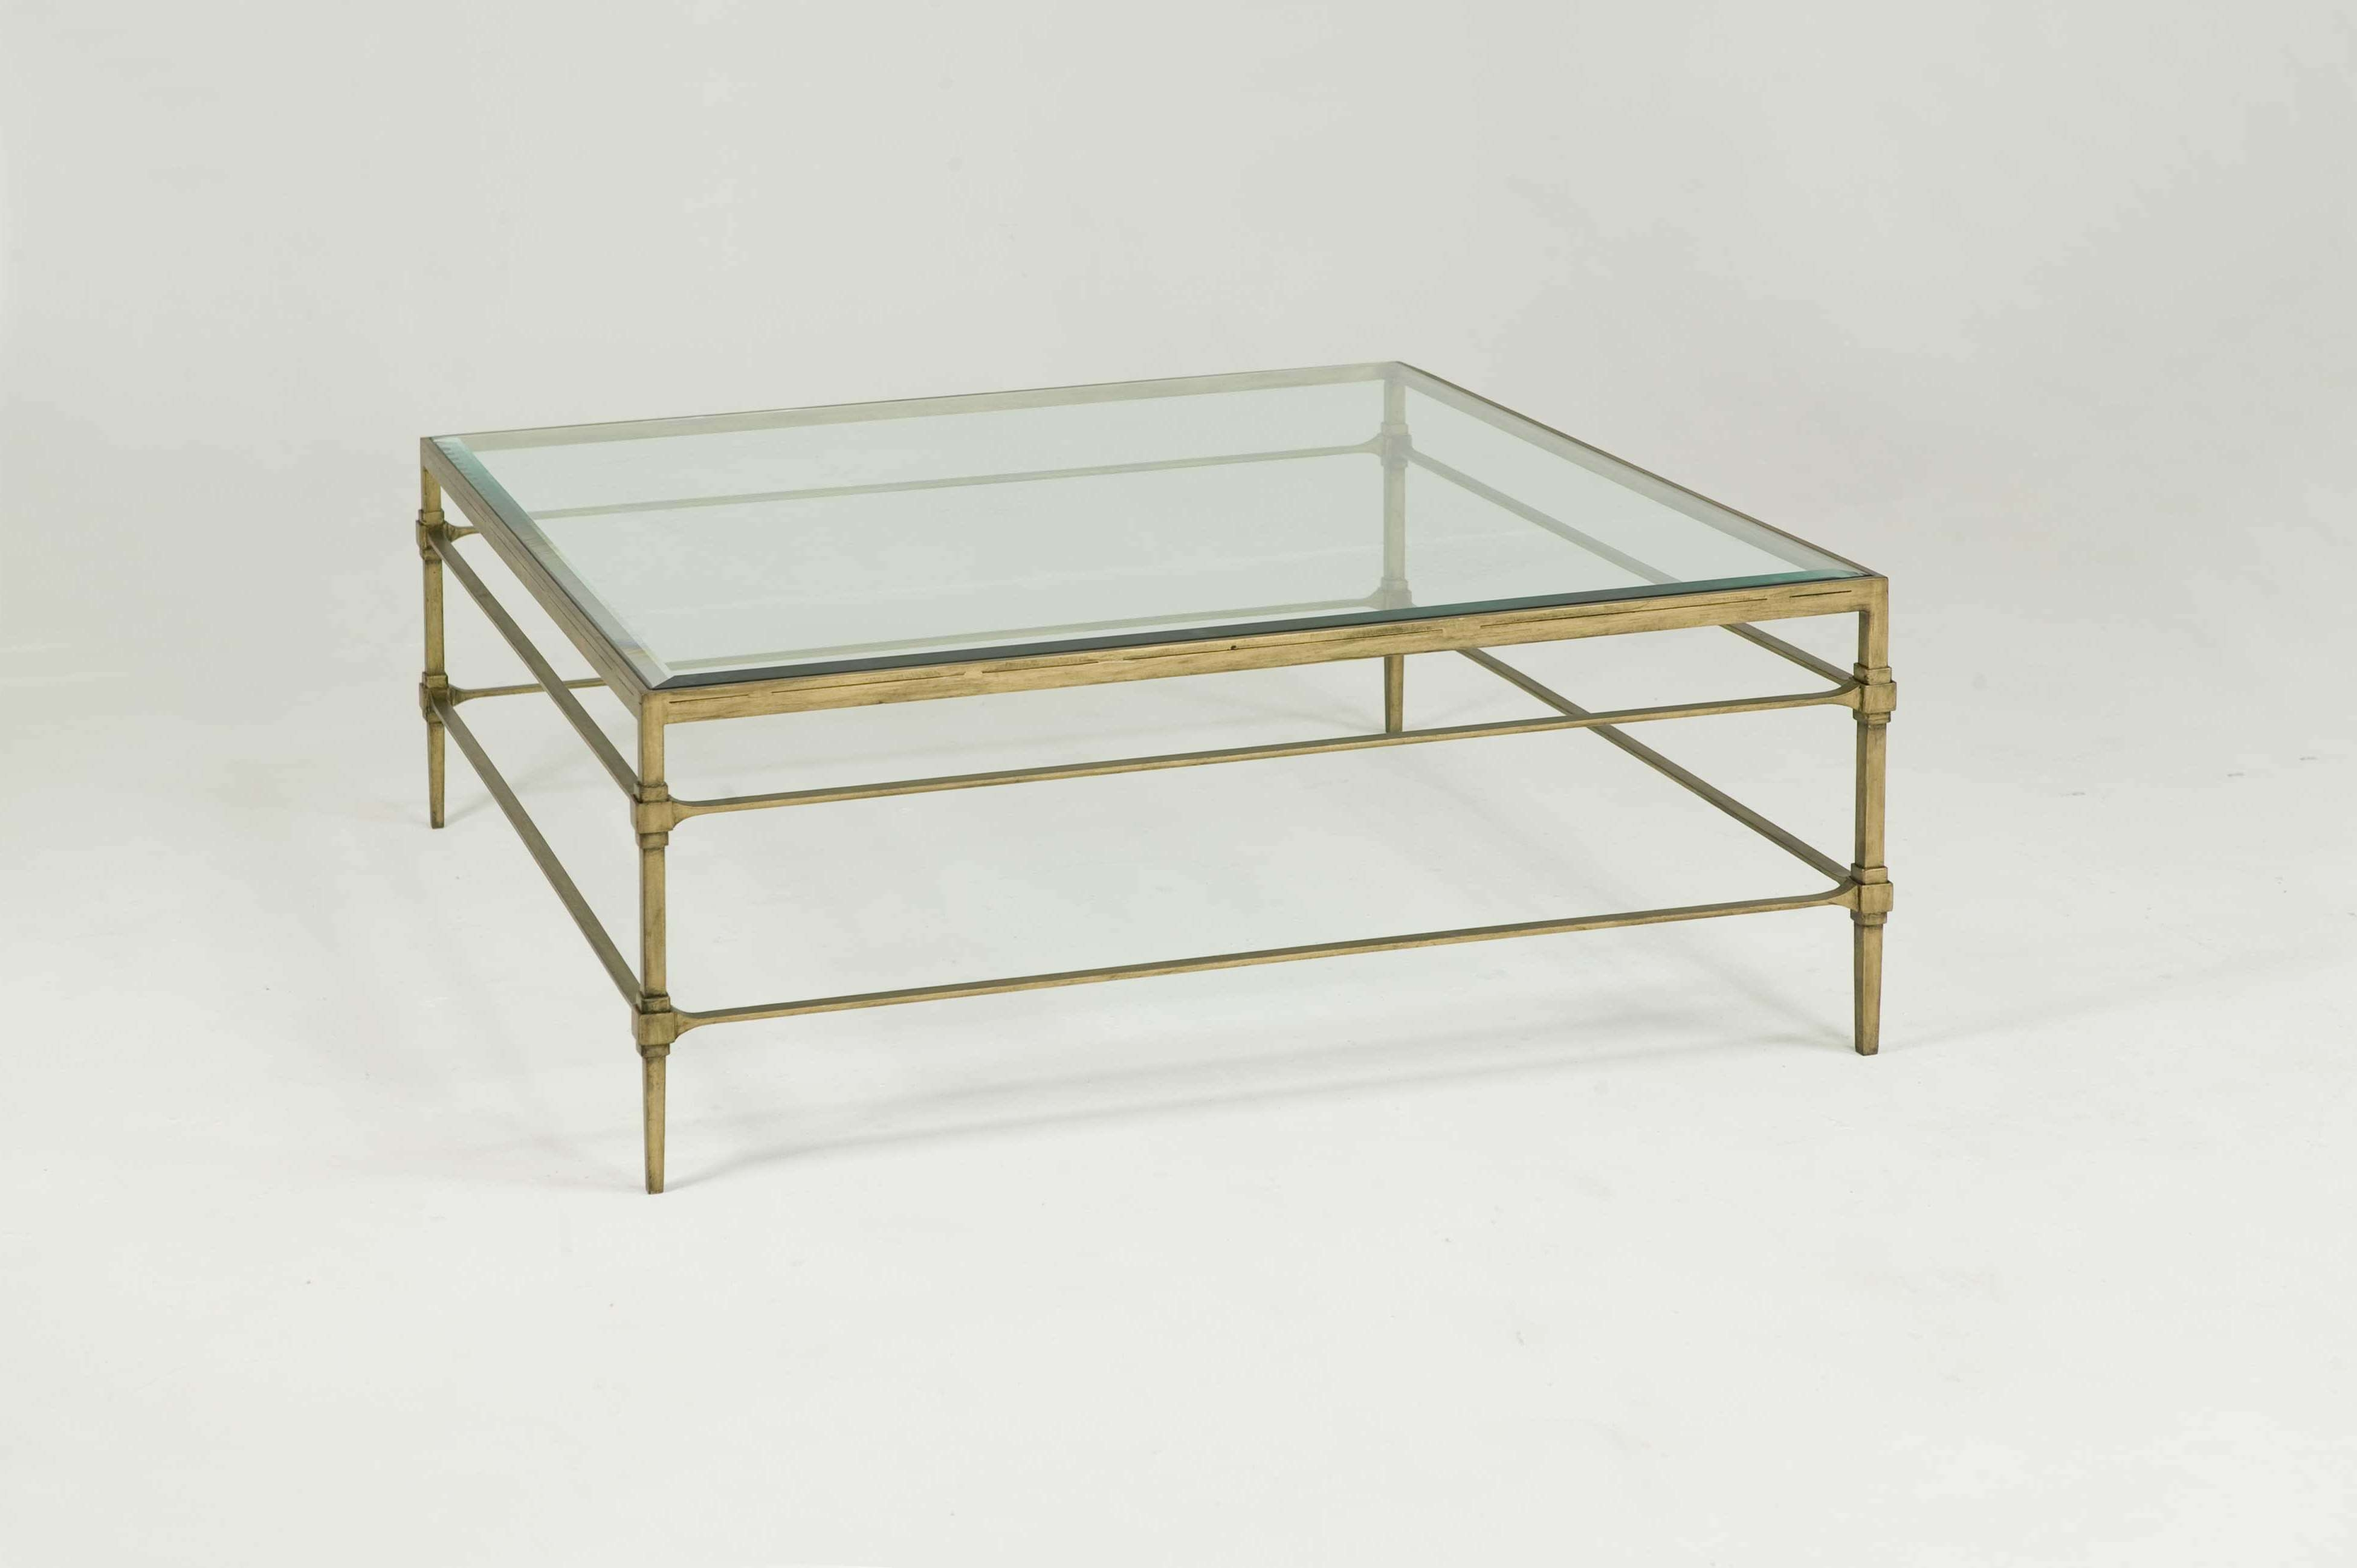 Decorations : Wood And Glass Coffee Tables Modern Ikea Metal And In Most Current Metal Glass Coffee Tables (View 4 of 20)